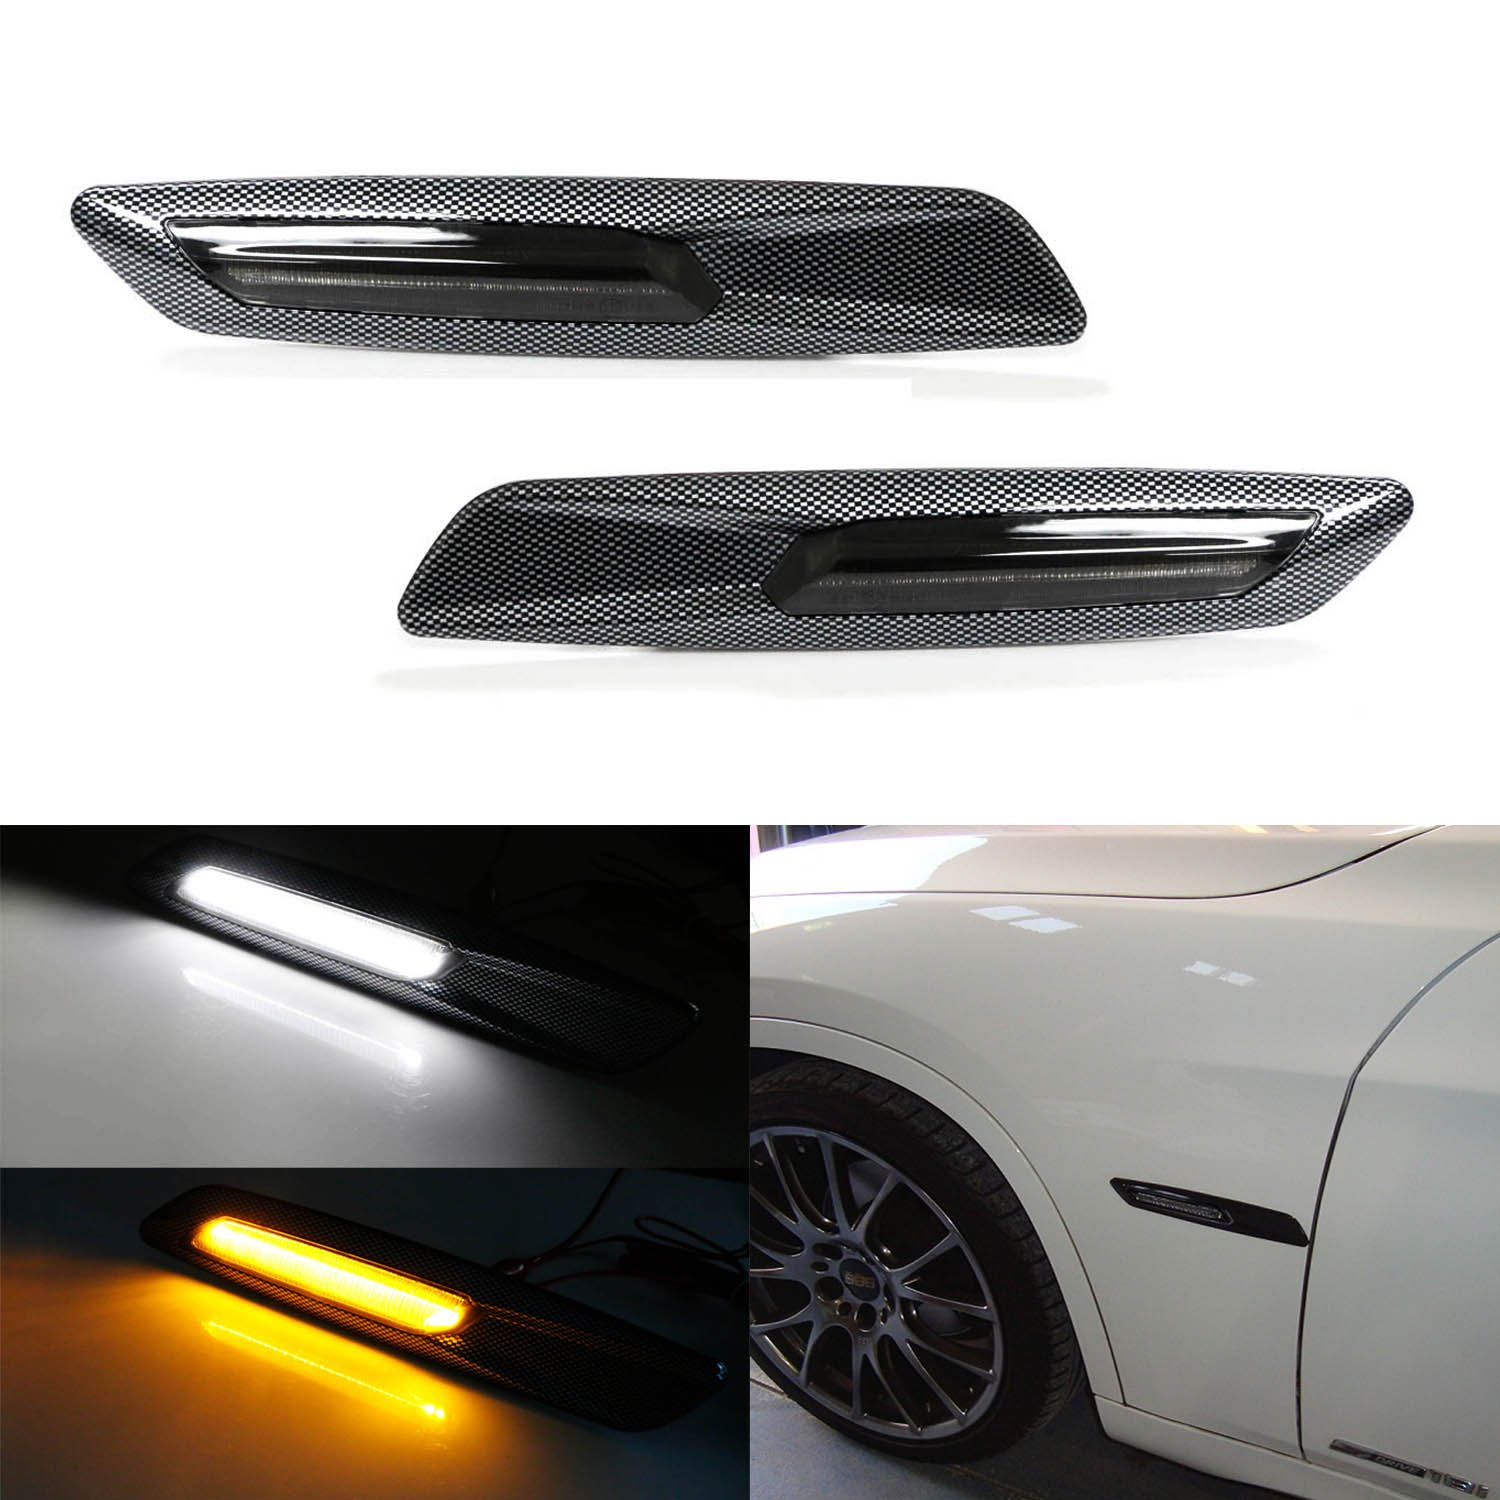 iJDMTOY BMW F10 Style White/Amber Switchback LED Light Carbon Fiber Checker Finish Side Marker Lamps For BMW E90 E92 E60 1 3 5 Series X1